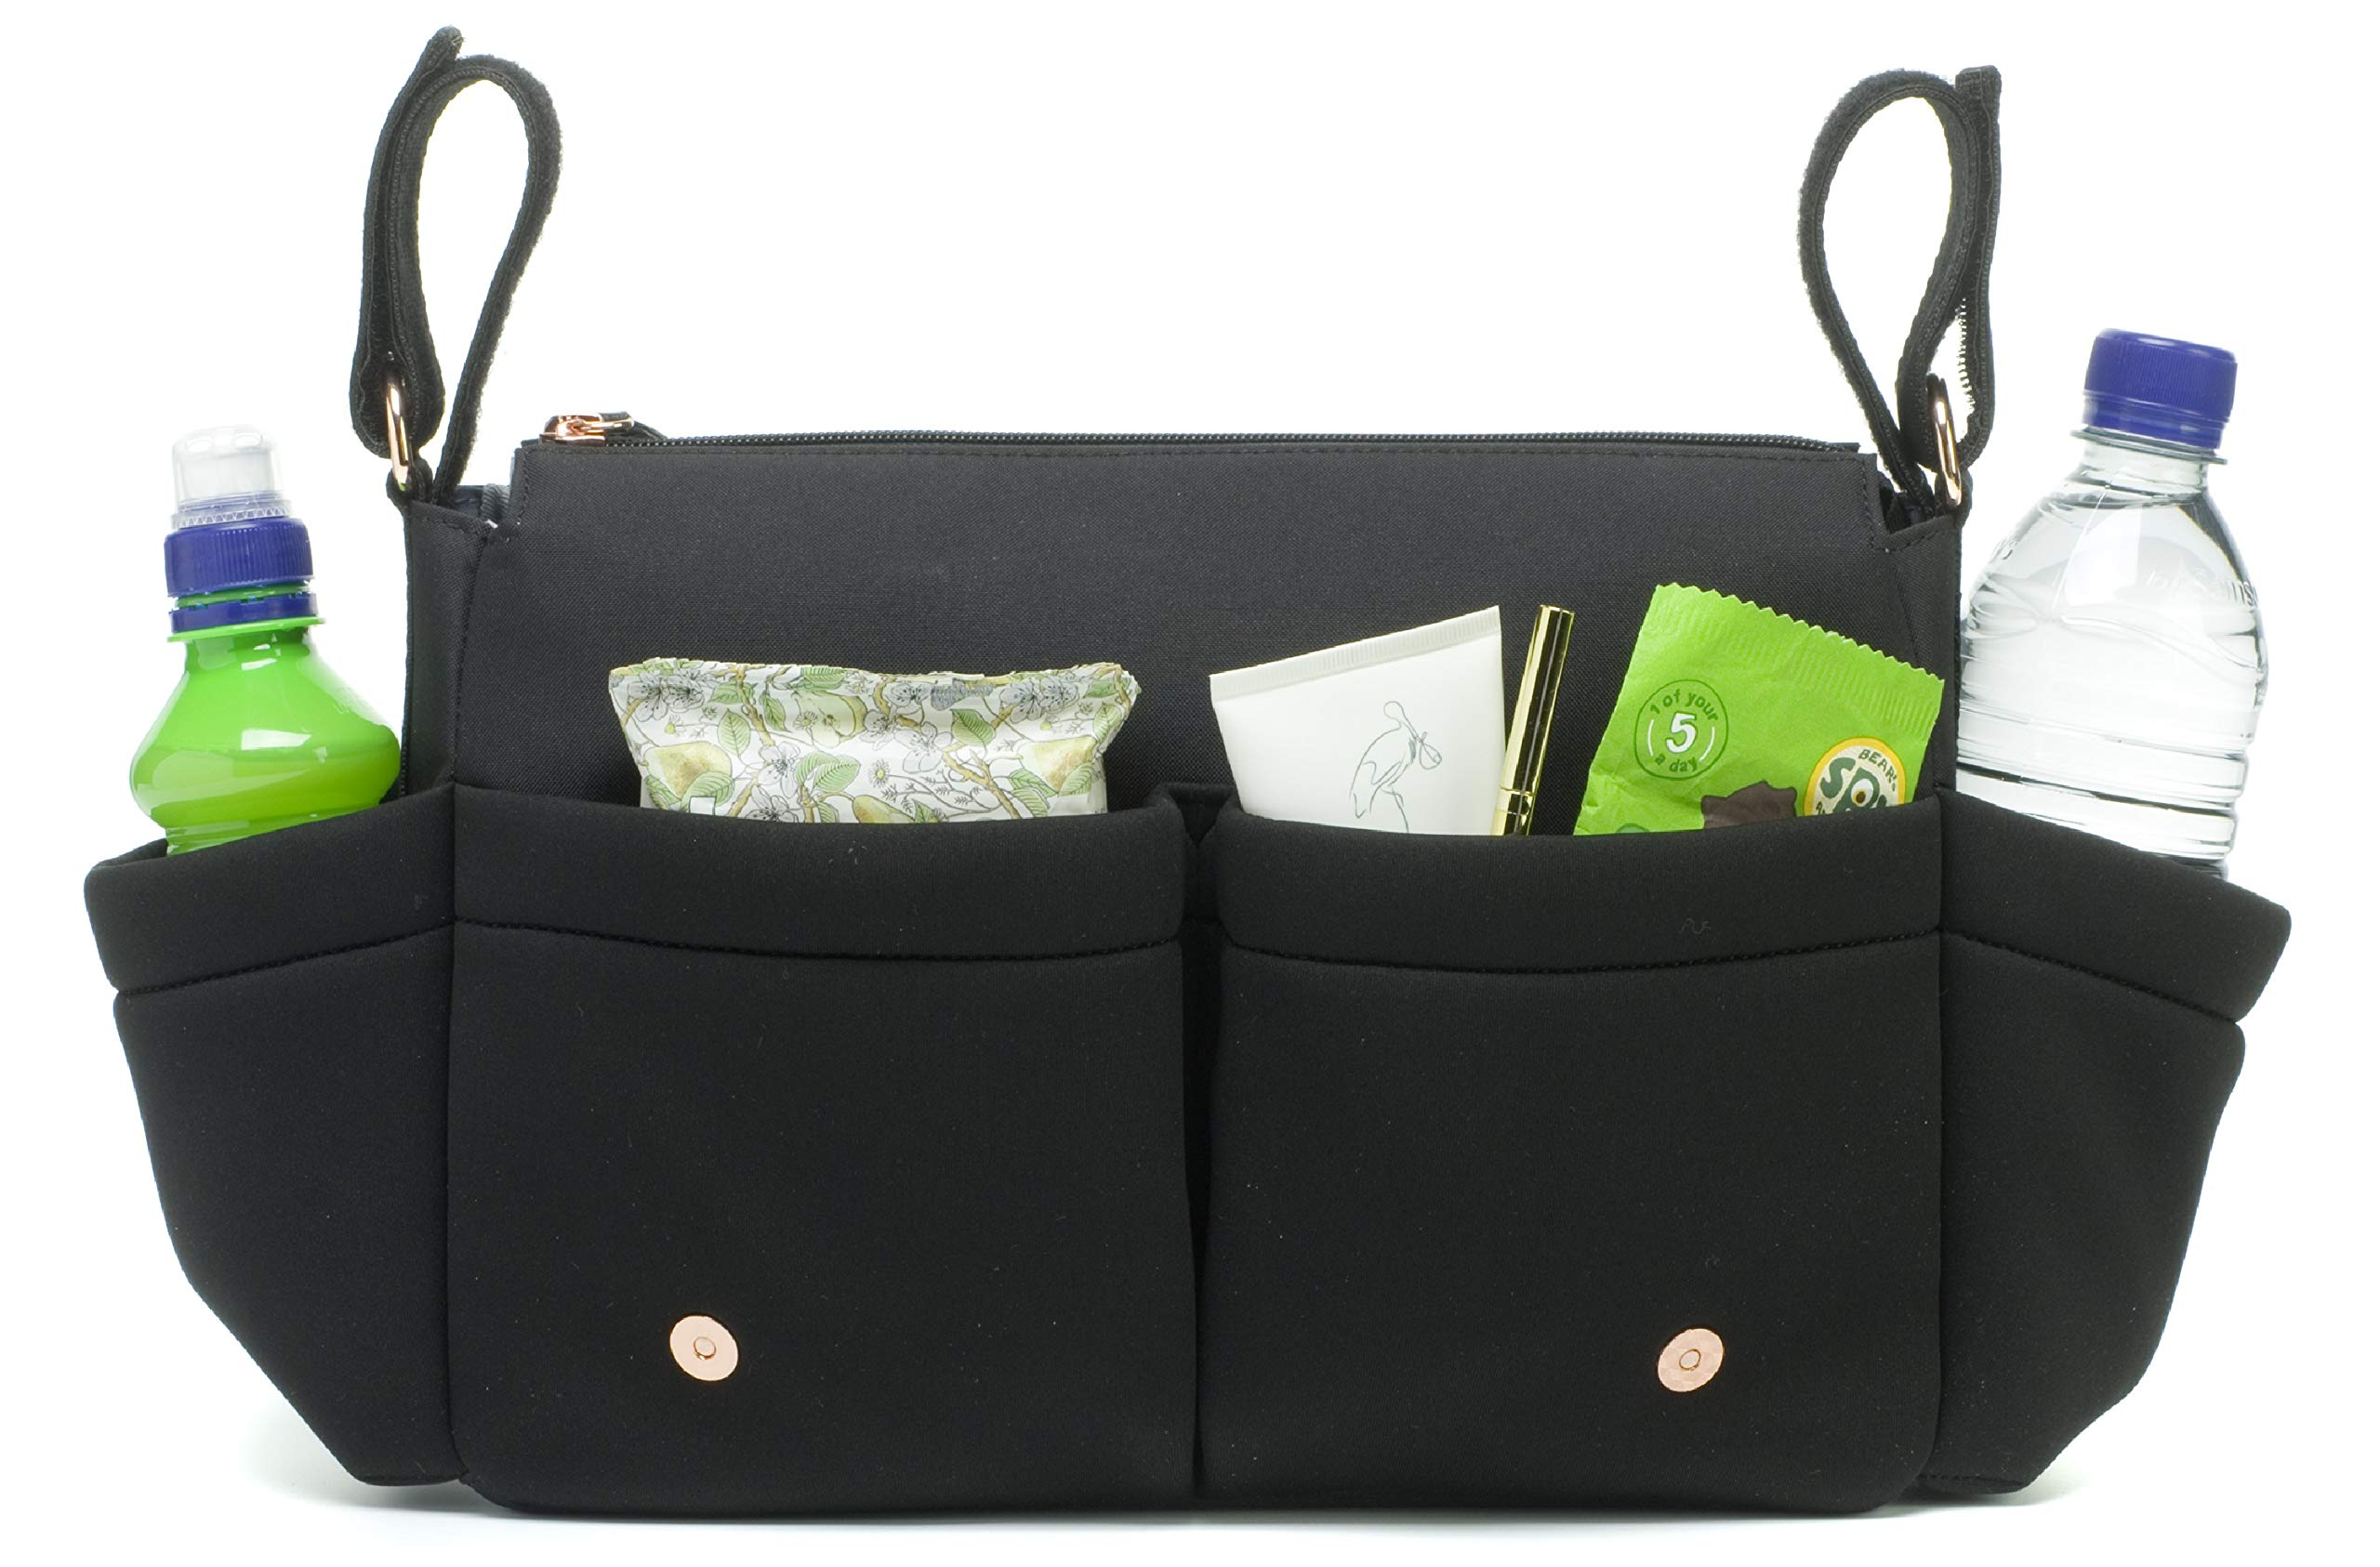 Black Travel Stroller Organizer and Hanging Diaper Bag by Storksak | Universal Fit, Large Storage Capacity, Baby Caddy with Elastic Cup Holder and Integrated Accessories by Storksak (Image #3)